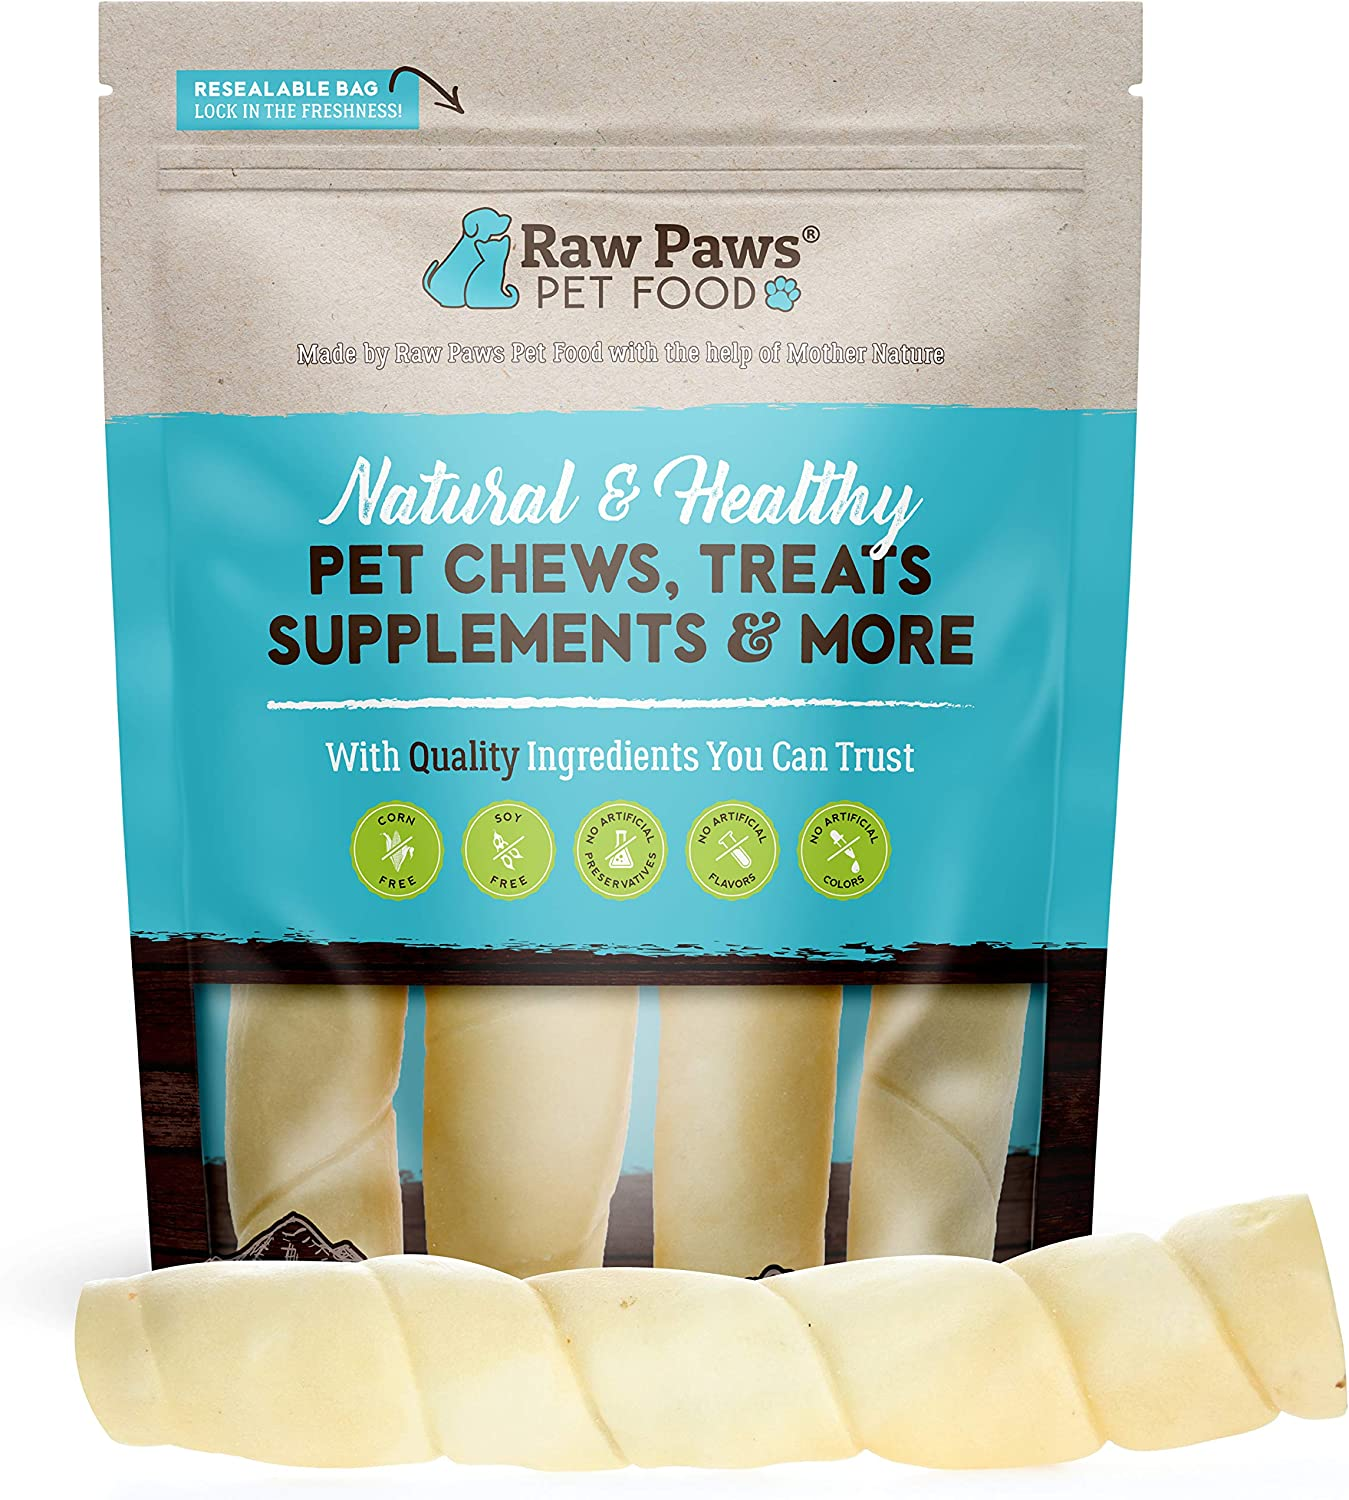 Raw Paws 10-inch Retriever Beef Cheek Rolls for Dogs, 4-ct - Packed in USA - Safe Rawhide Alternative Dog Chews - Free-Range Cow Cheek Rolls for Dogs - Retriever Rolls for Large Dogs - Dog Beef Cheeks